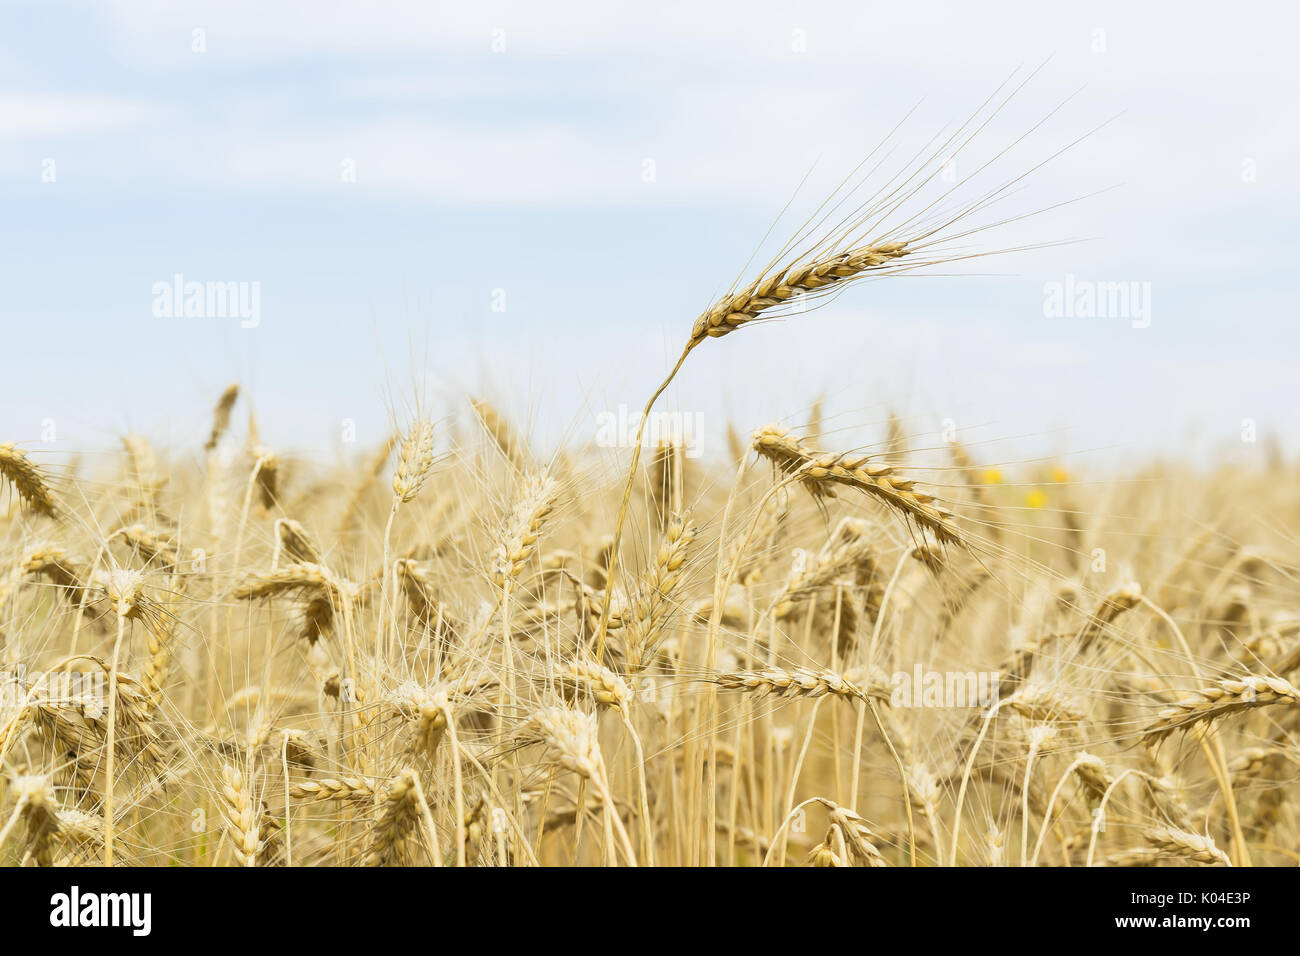 Hot summer afternoon in field. Close-up of ripe cereal ears, for seasonal background - Stock Image